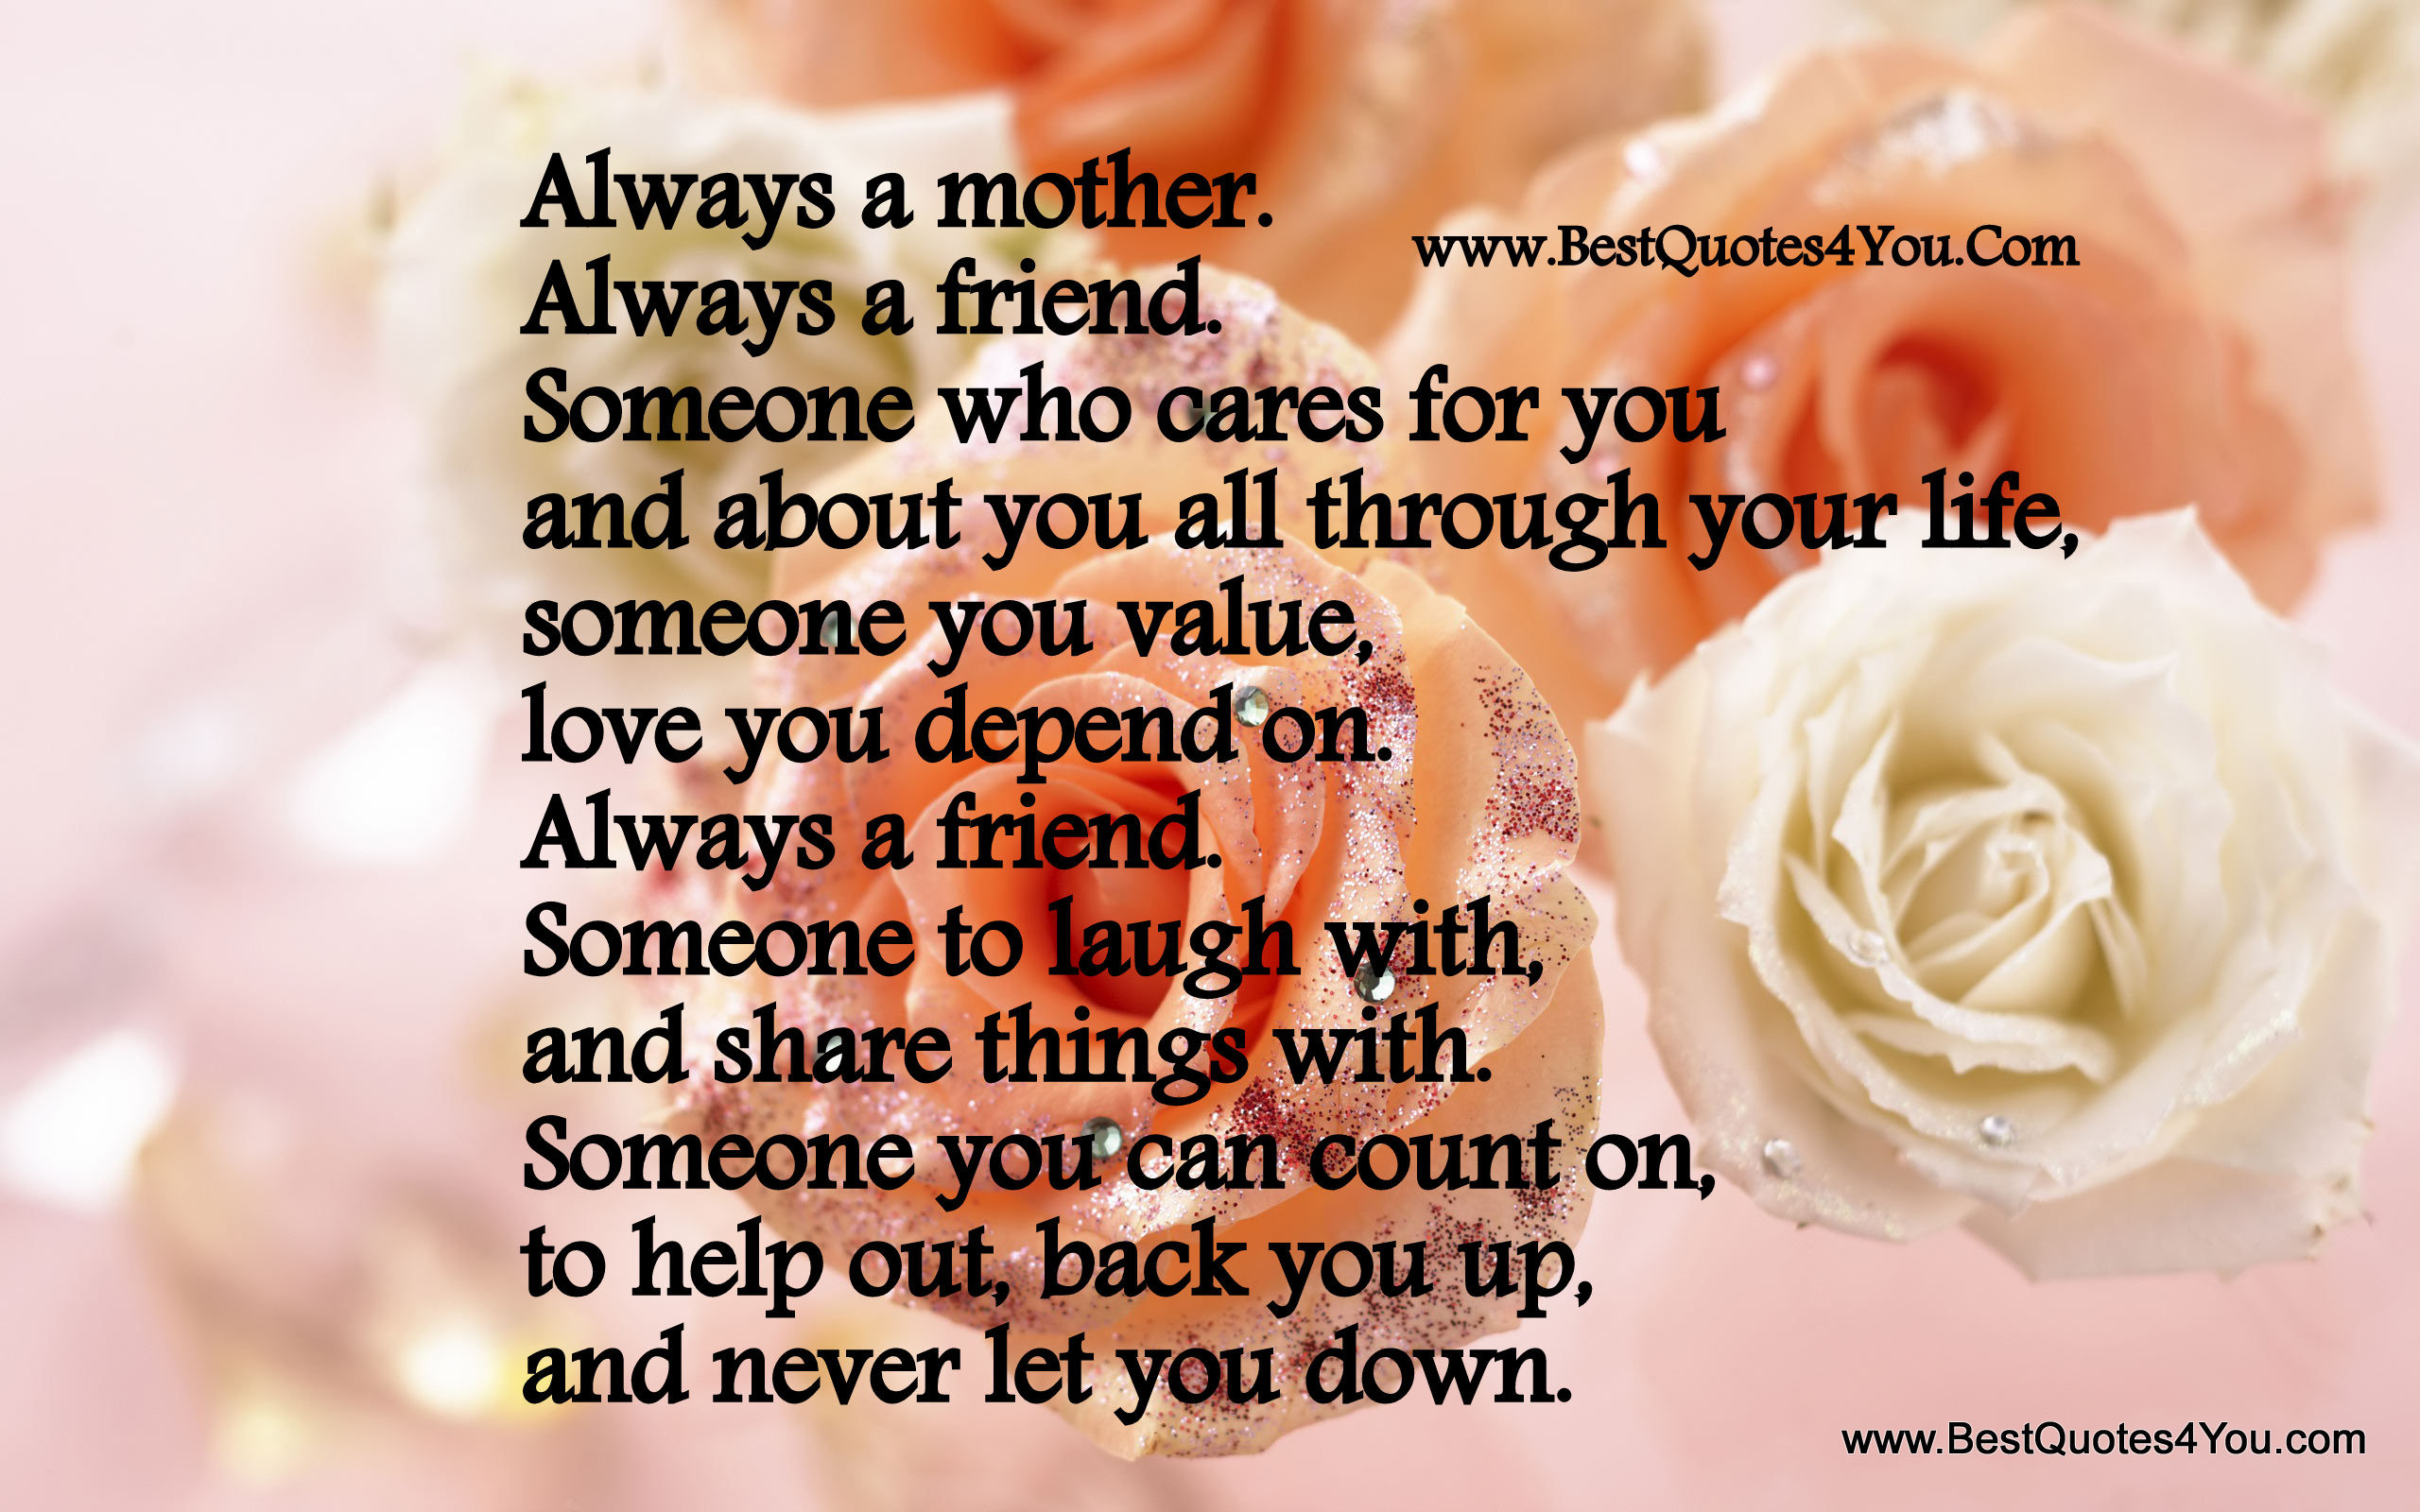 … I Love U Mom And Dad Quotes 1000+ Images About Touches My Heart On  Pinterest …